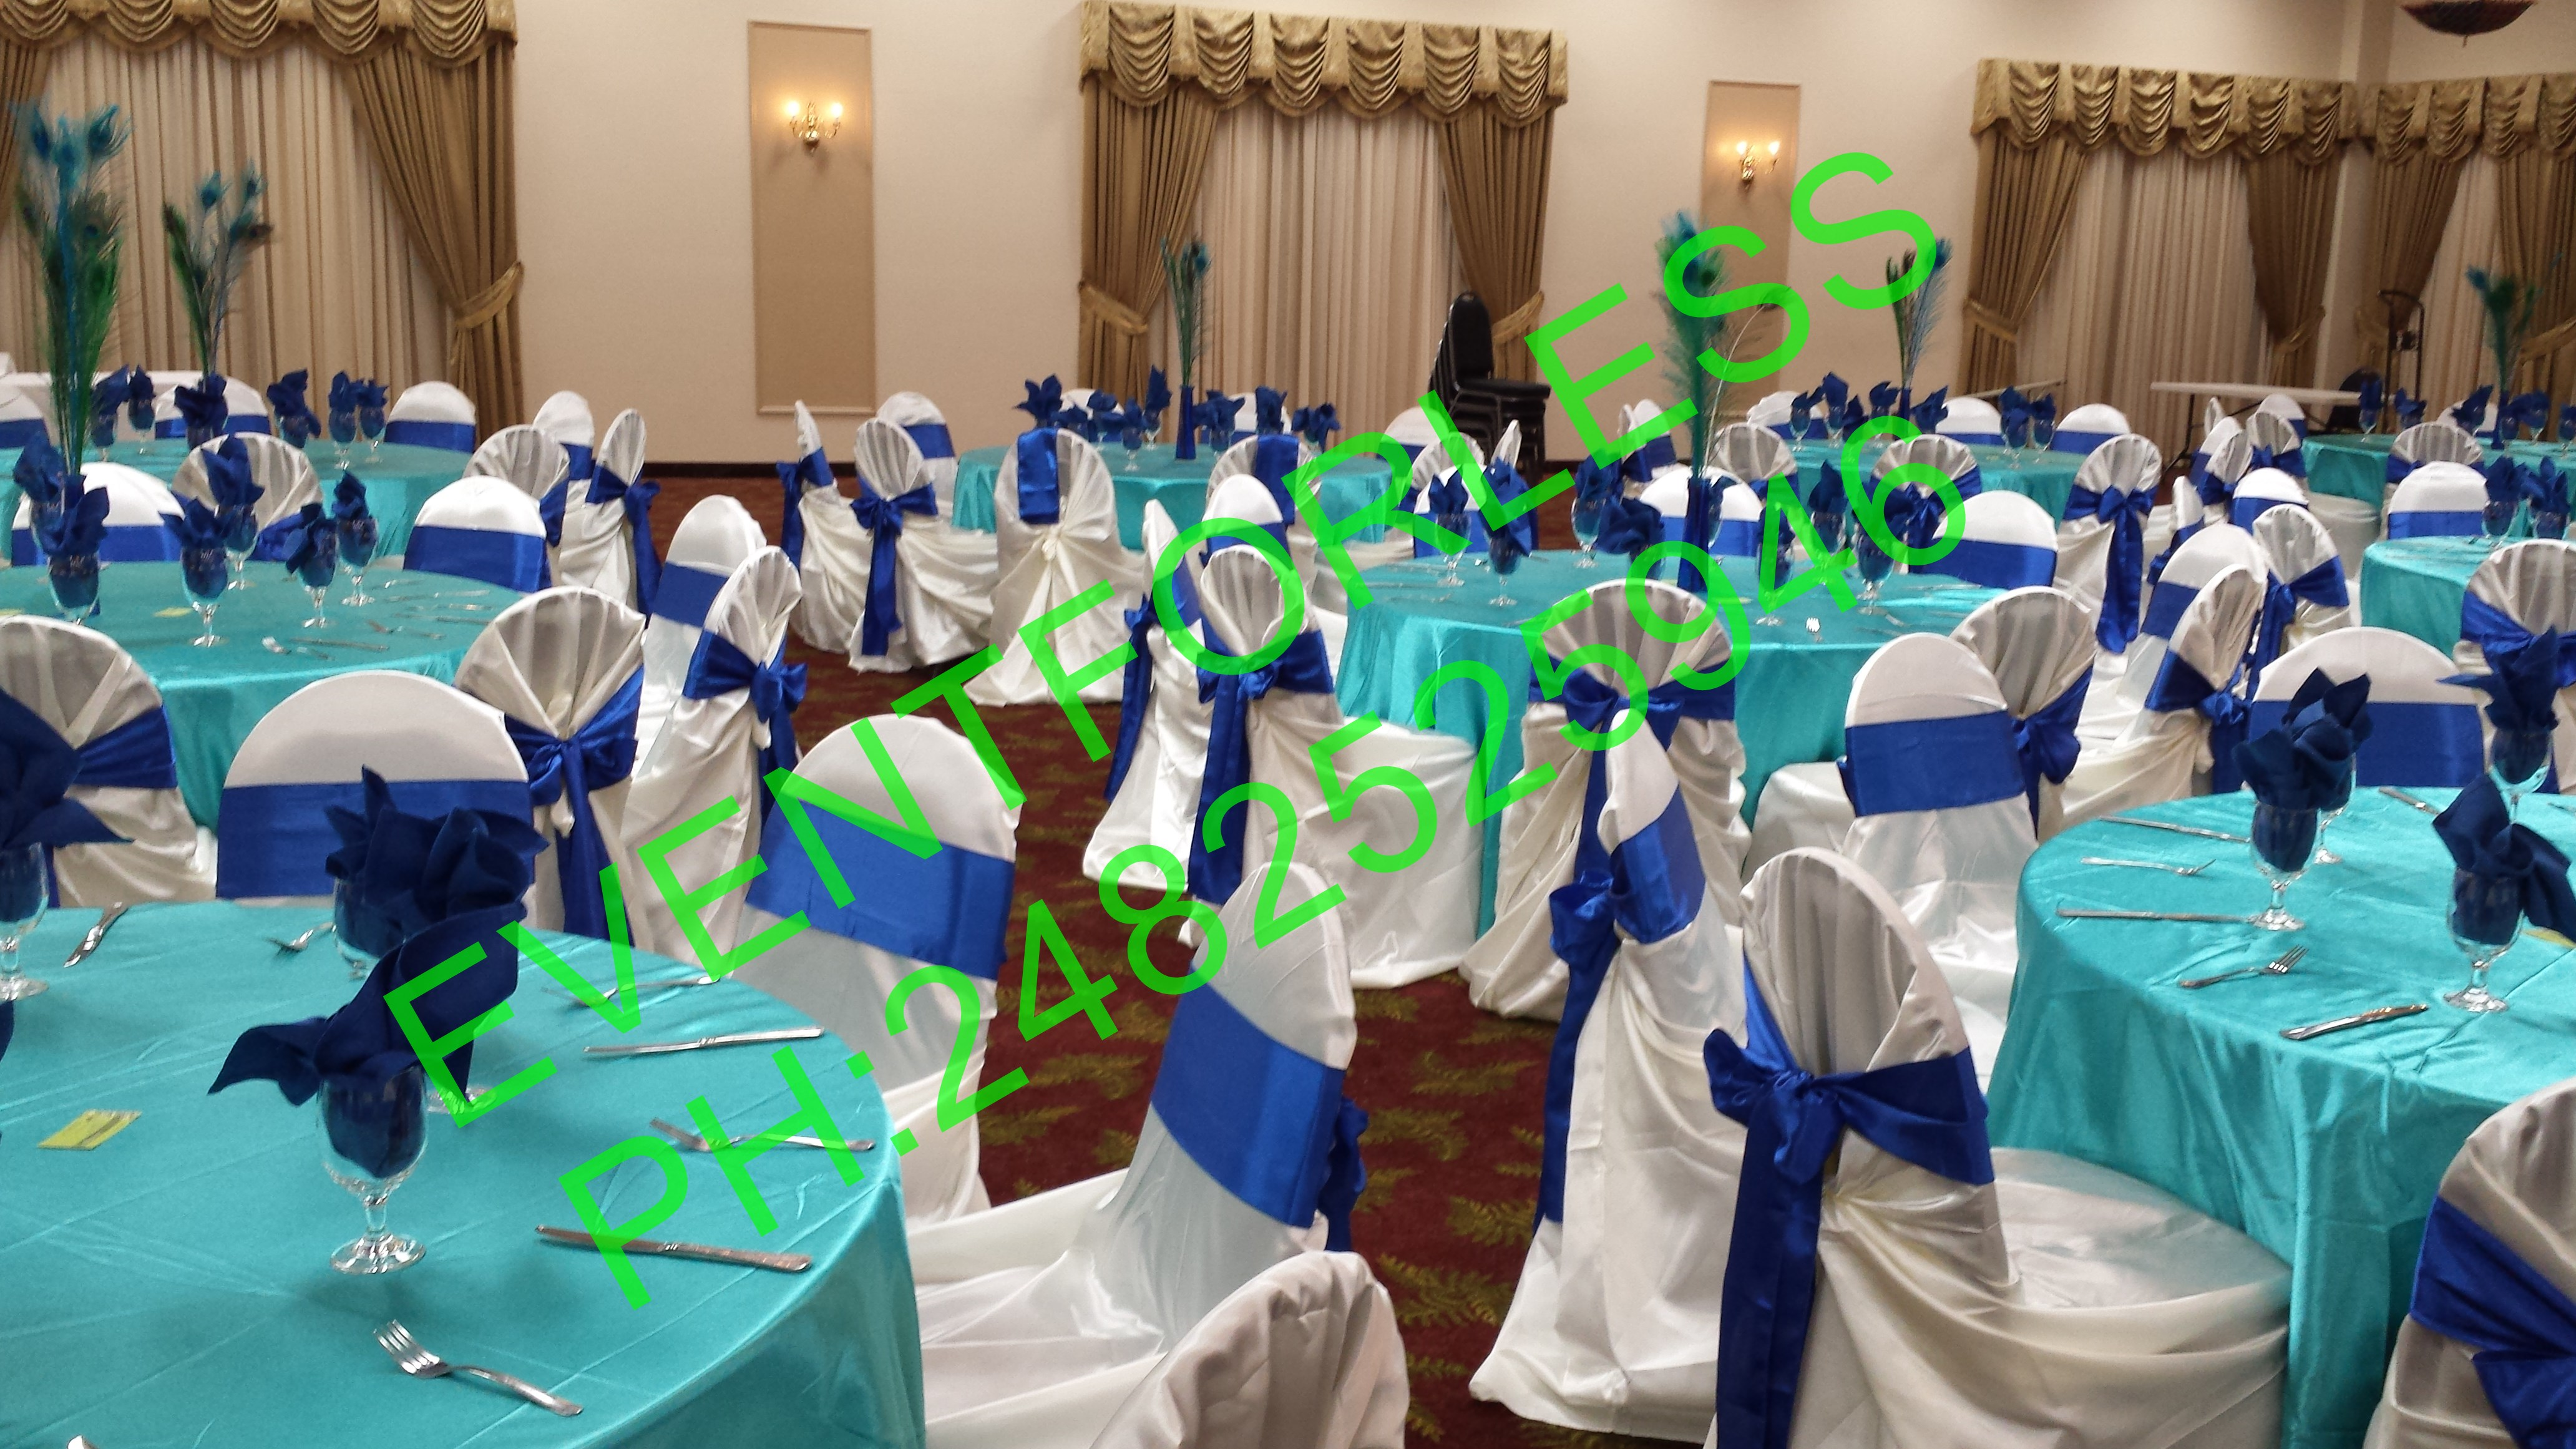 Marvelous Chair Table Linens Event For Less Pabps2019 Chair Design Images Pabps2019Com